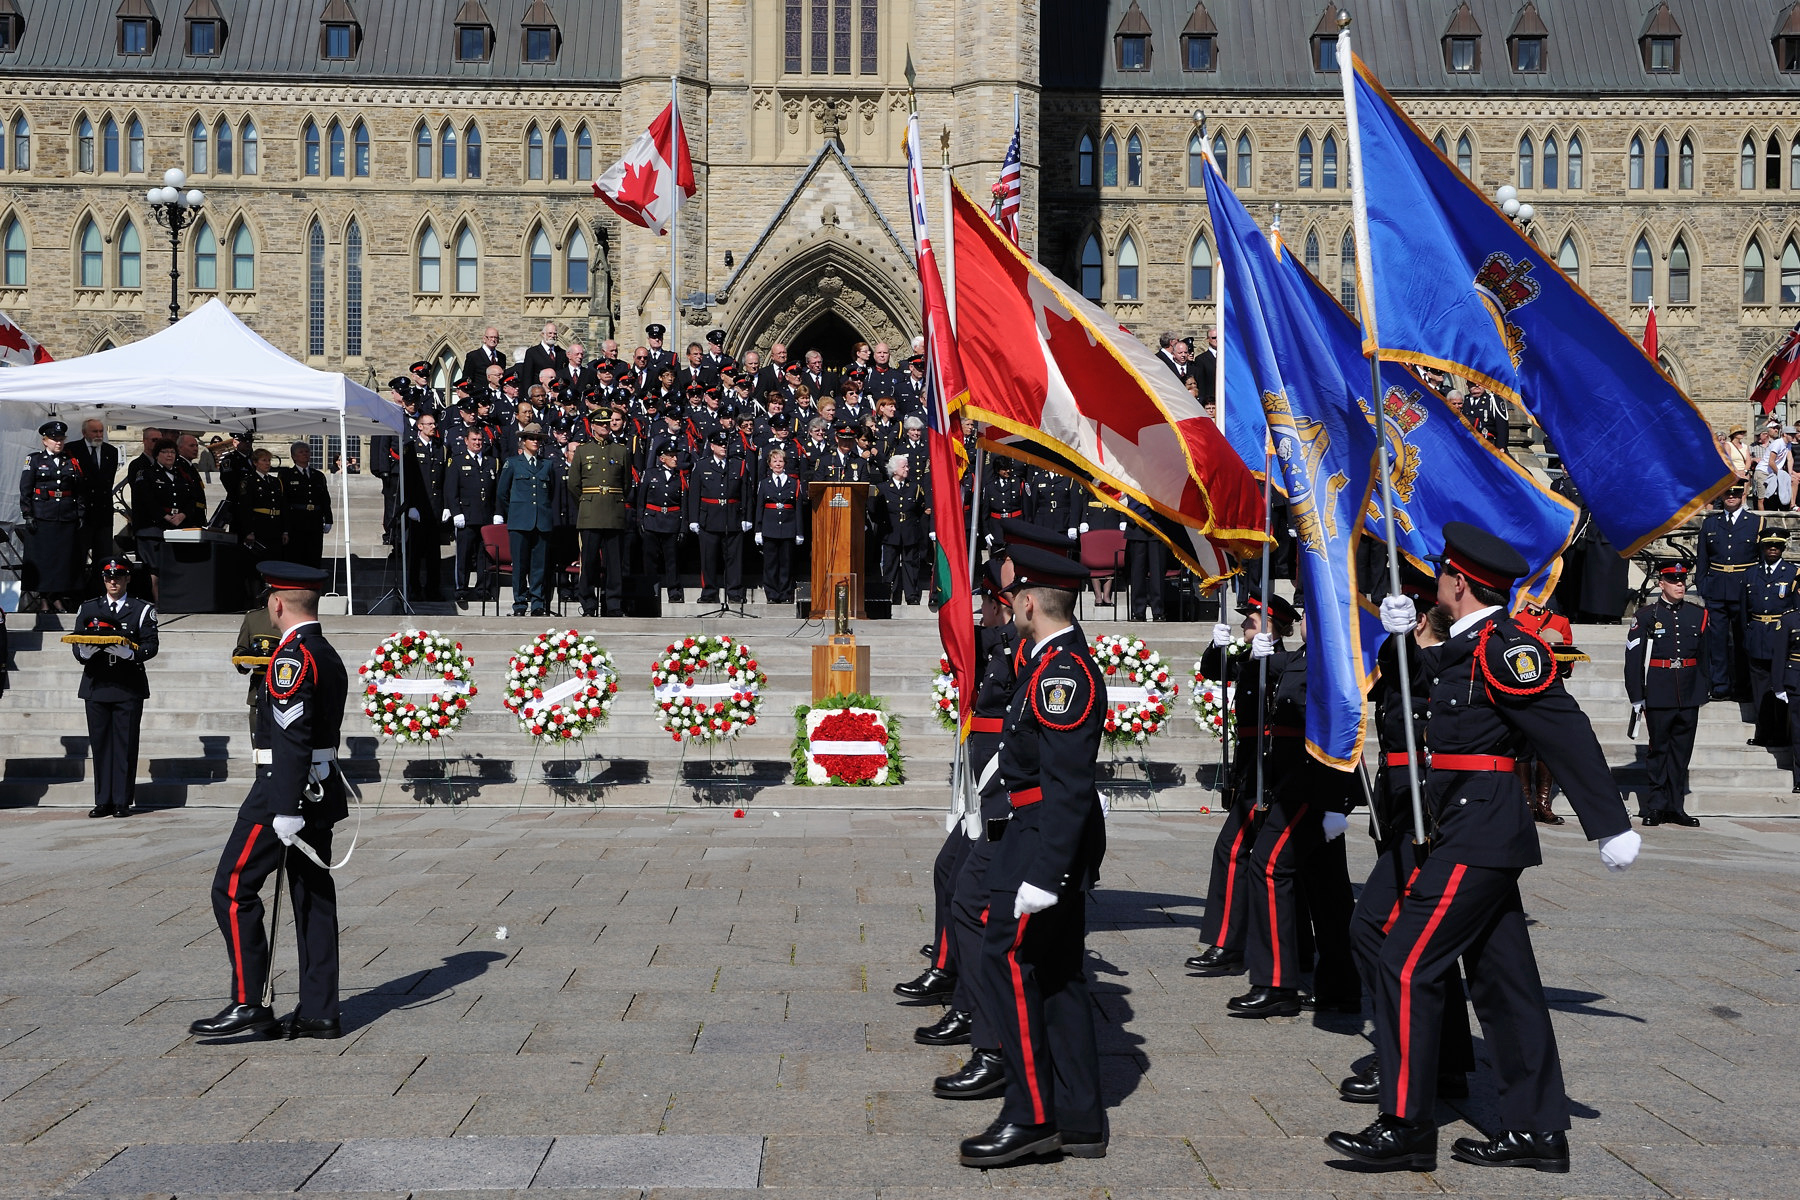 The annual Canadian Police and Peace Officers' Memorial Service takes place every year, on Parliament Hill.